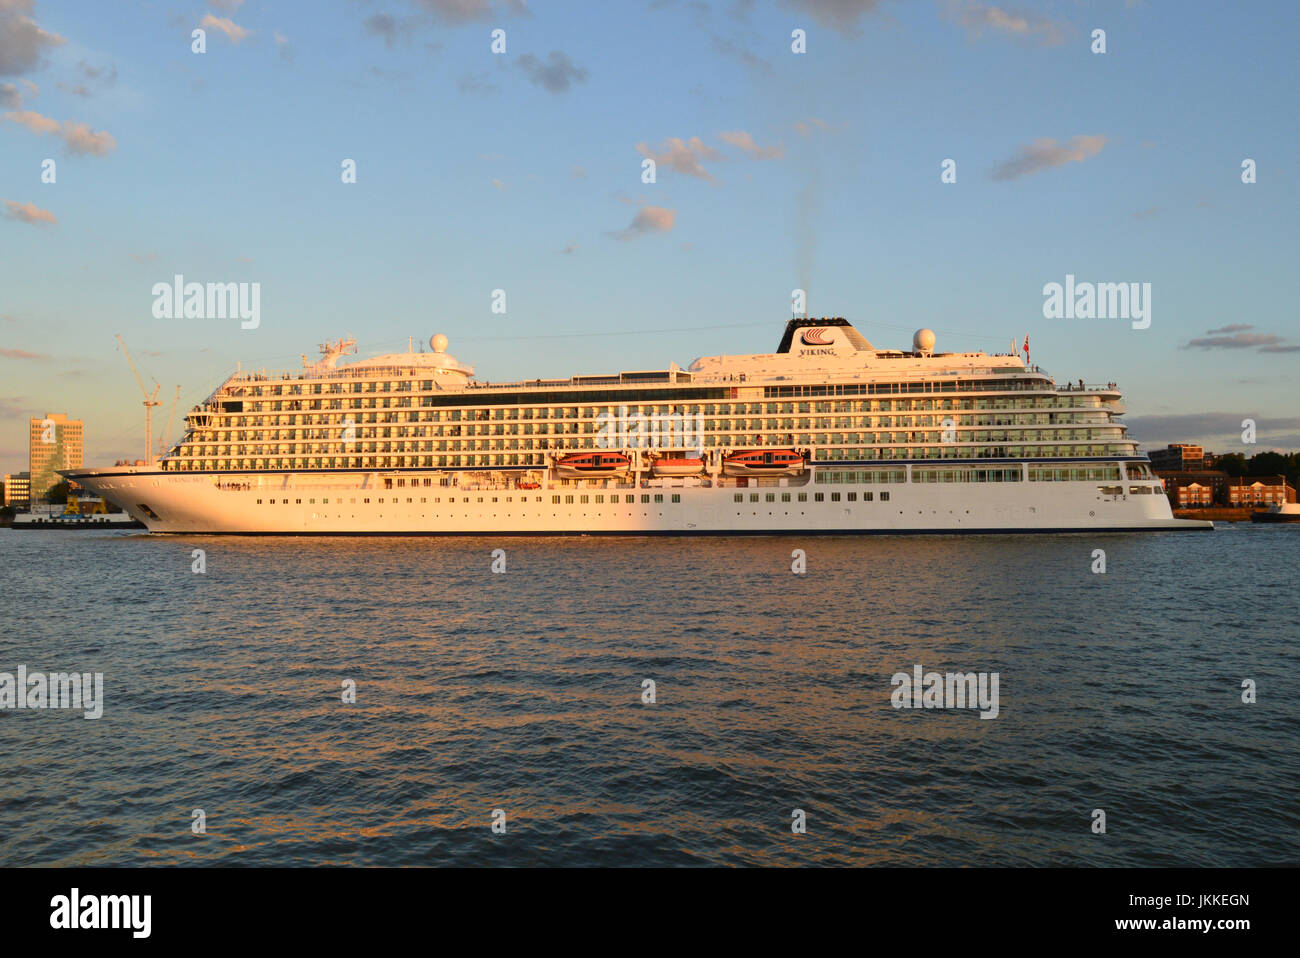 Cruise Ship Viking Sky heads down the Thames - Stock Image